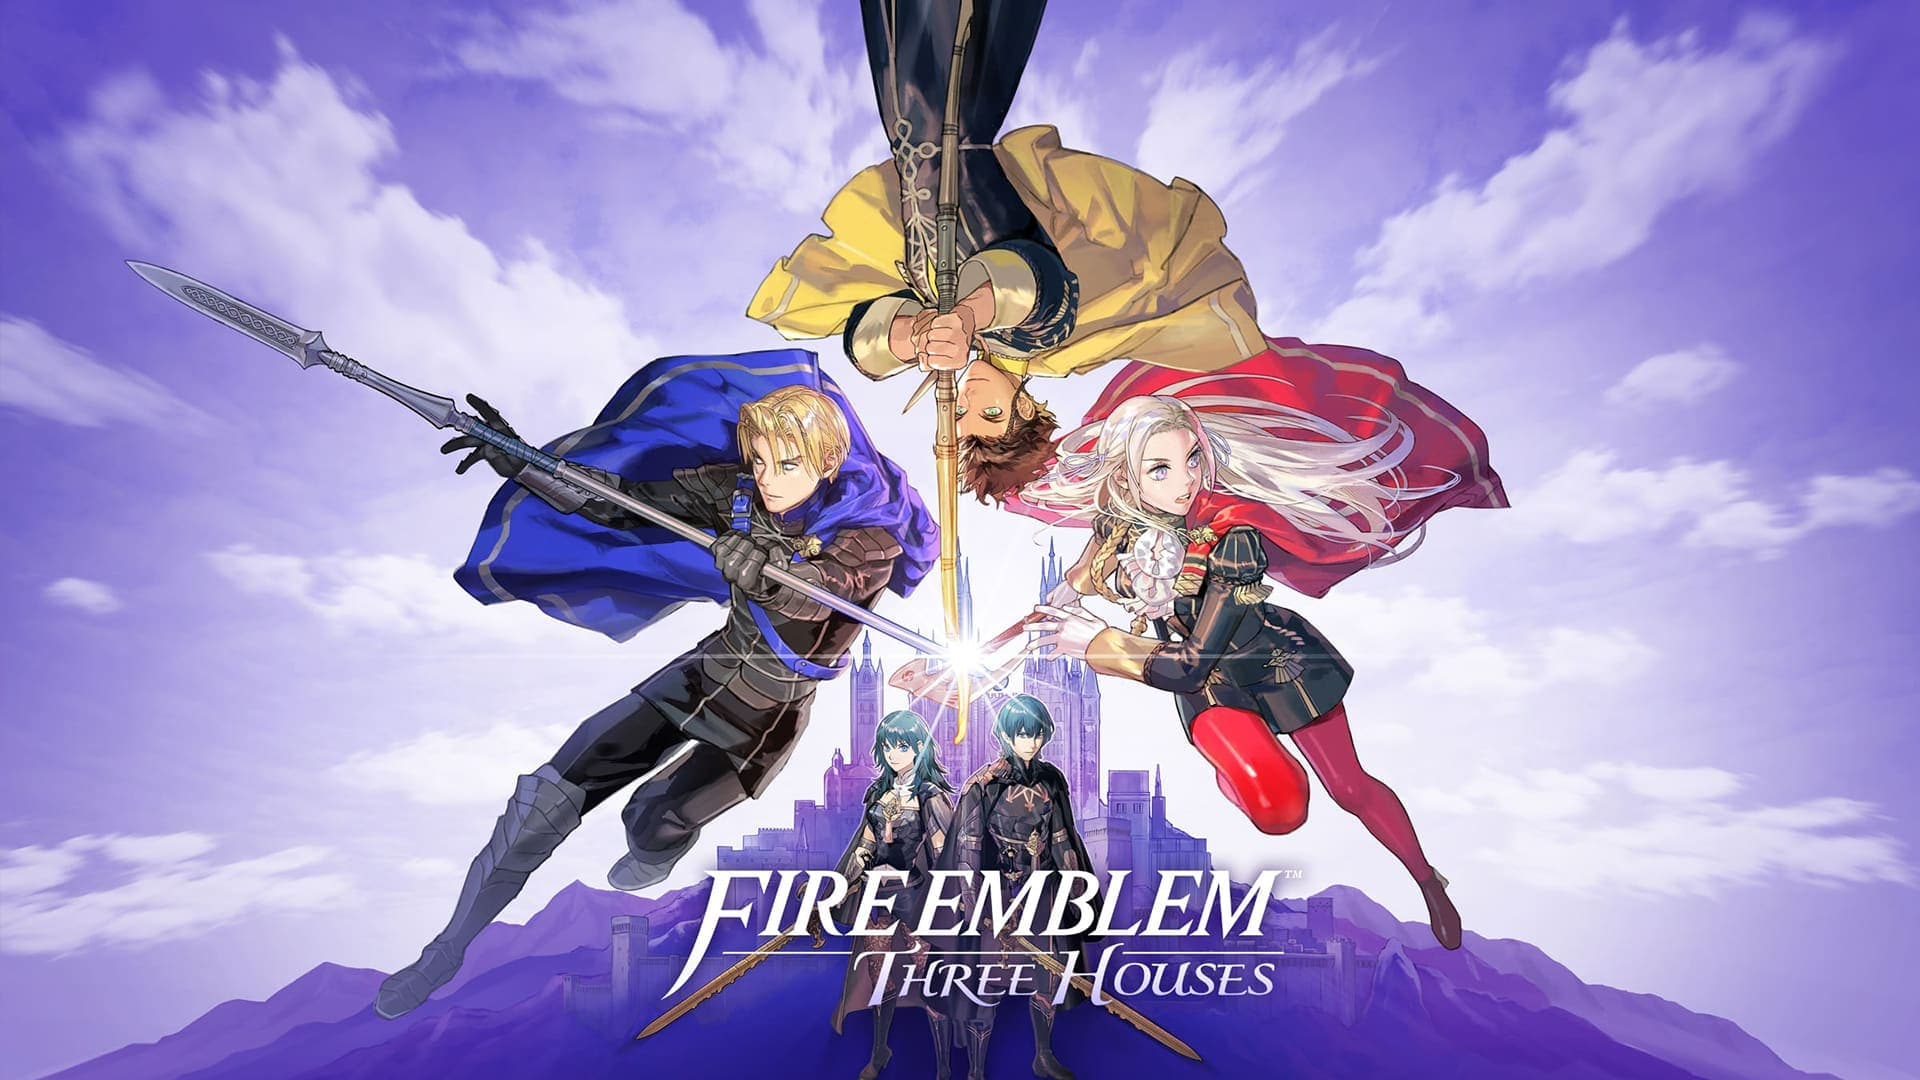 Fire Emblem: Three Houses Switch Story Trailer Revealed